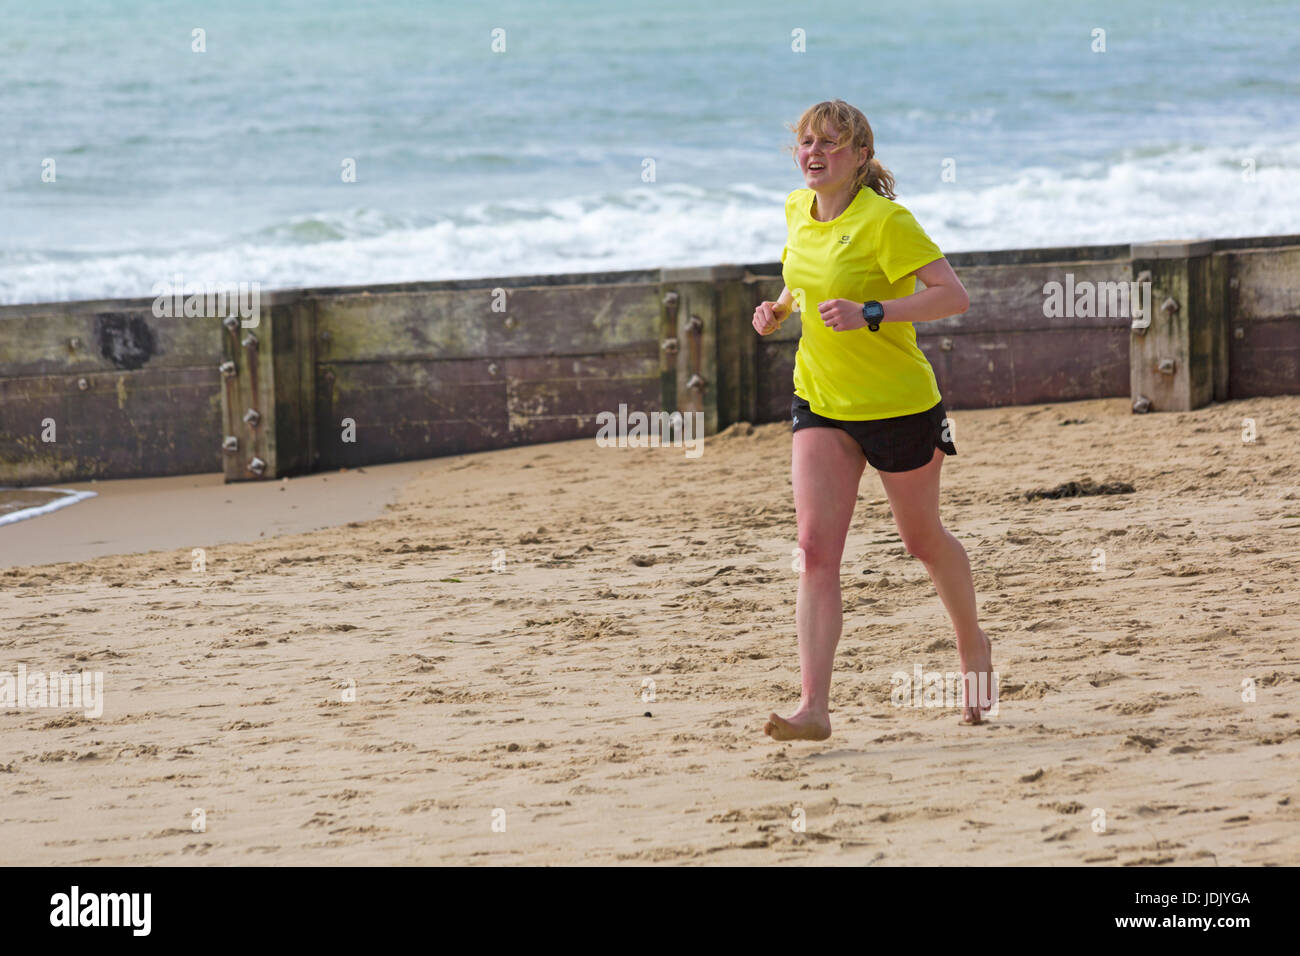 Young woman running bare footed along seashore at Bournemouth beach at Bournemouth, Dorset in April Stock Photo